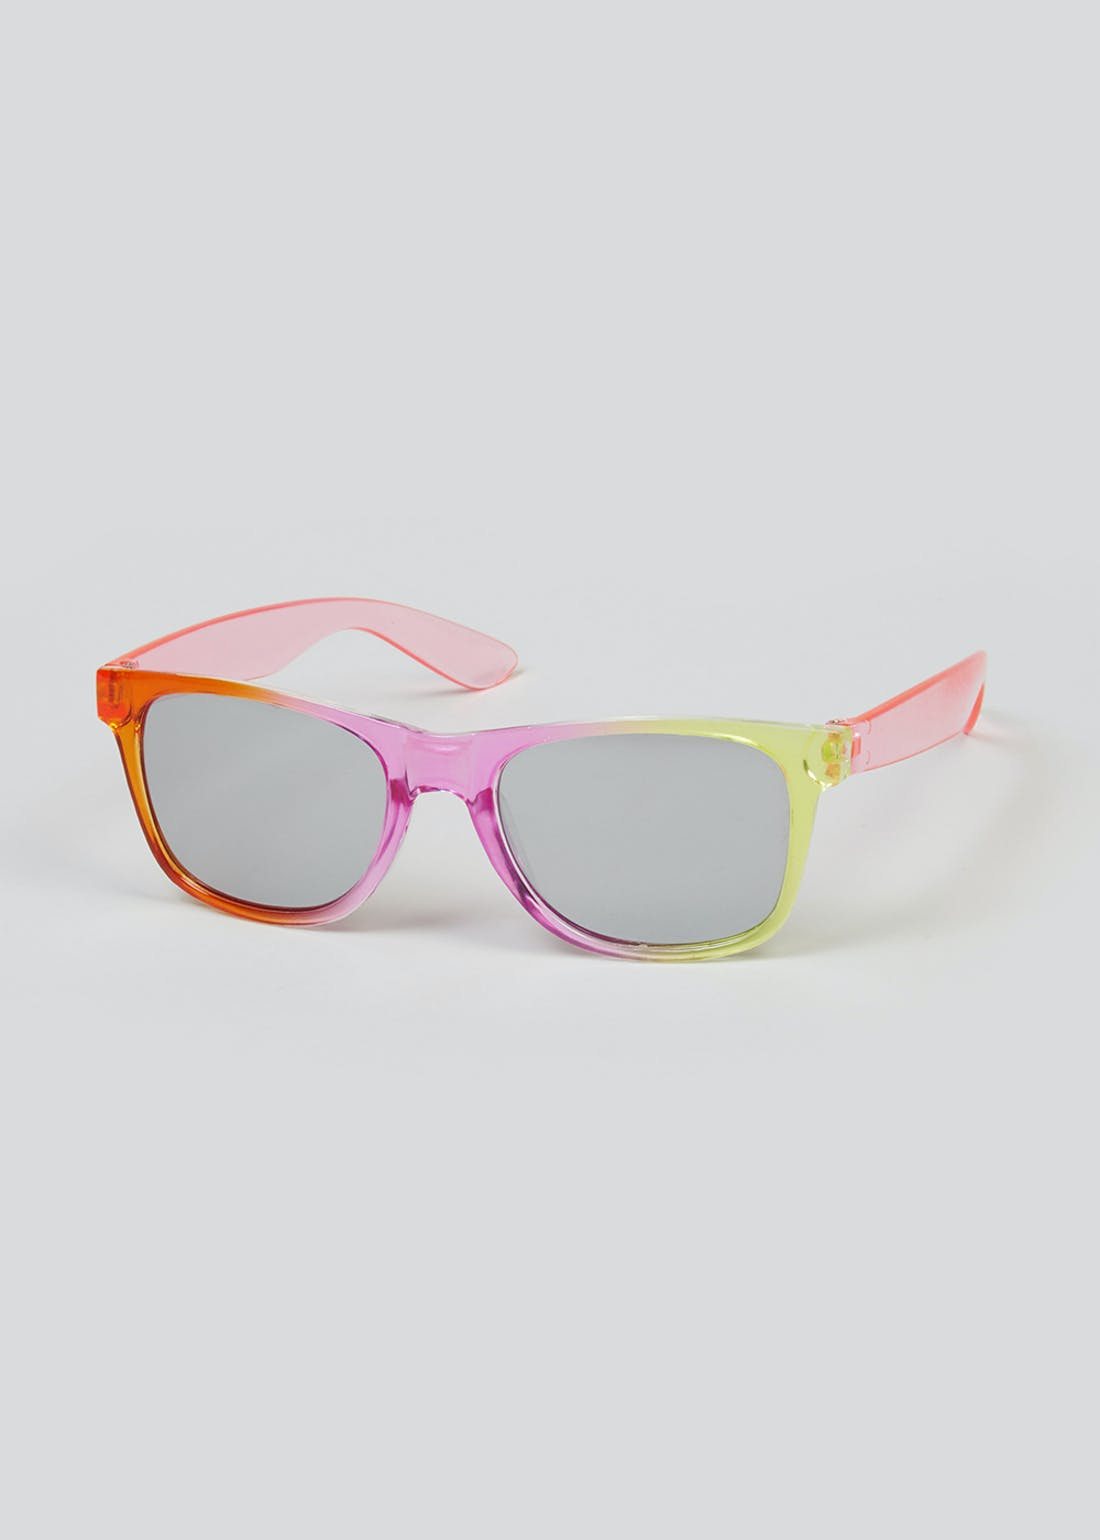 Girls Rainbow Sunglasses (One Size)